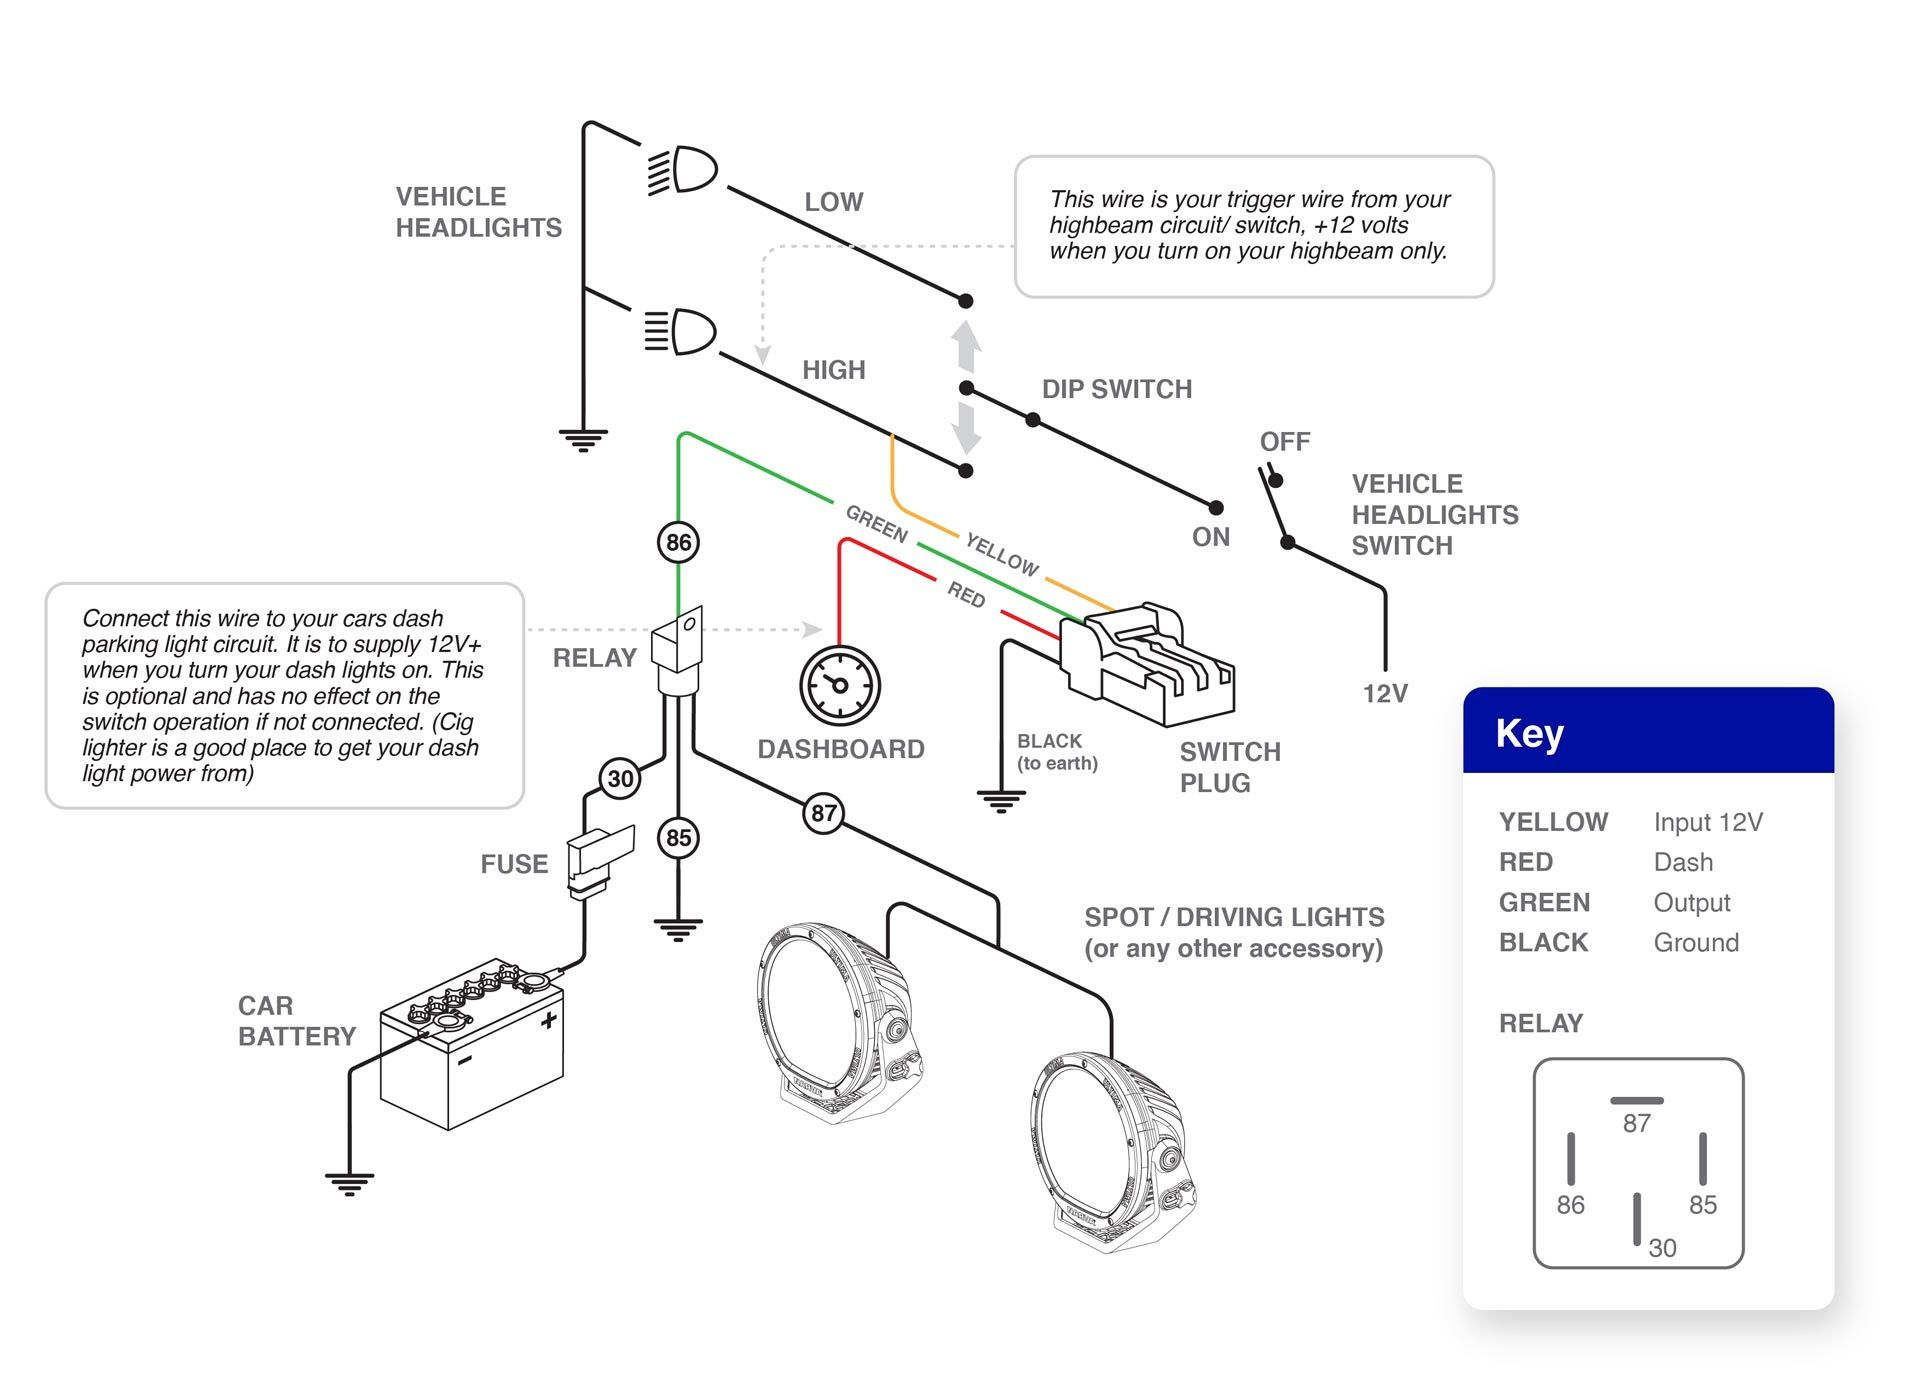 Switch wiring diagram for positive switched Nissan vehicles (refer to Nissan model)